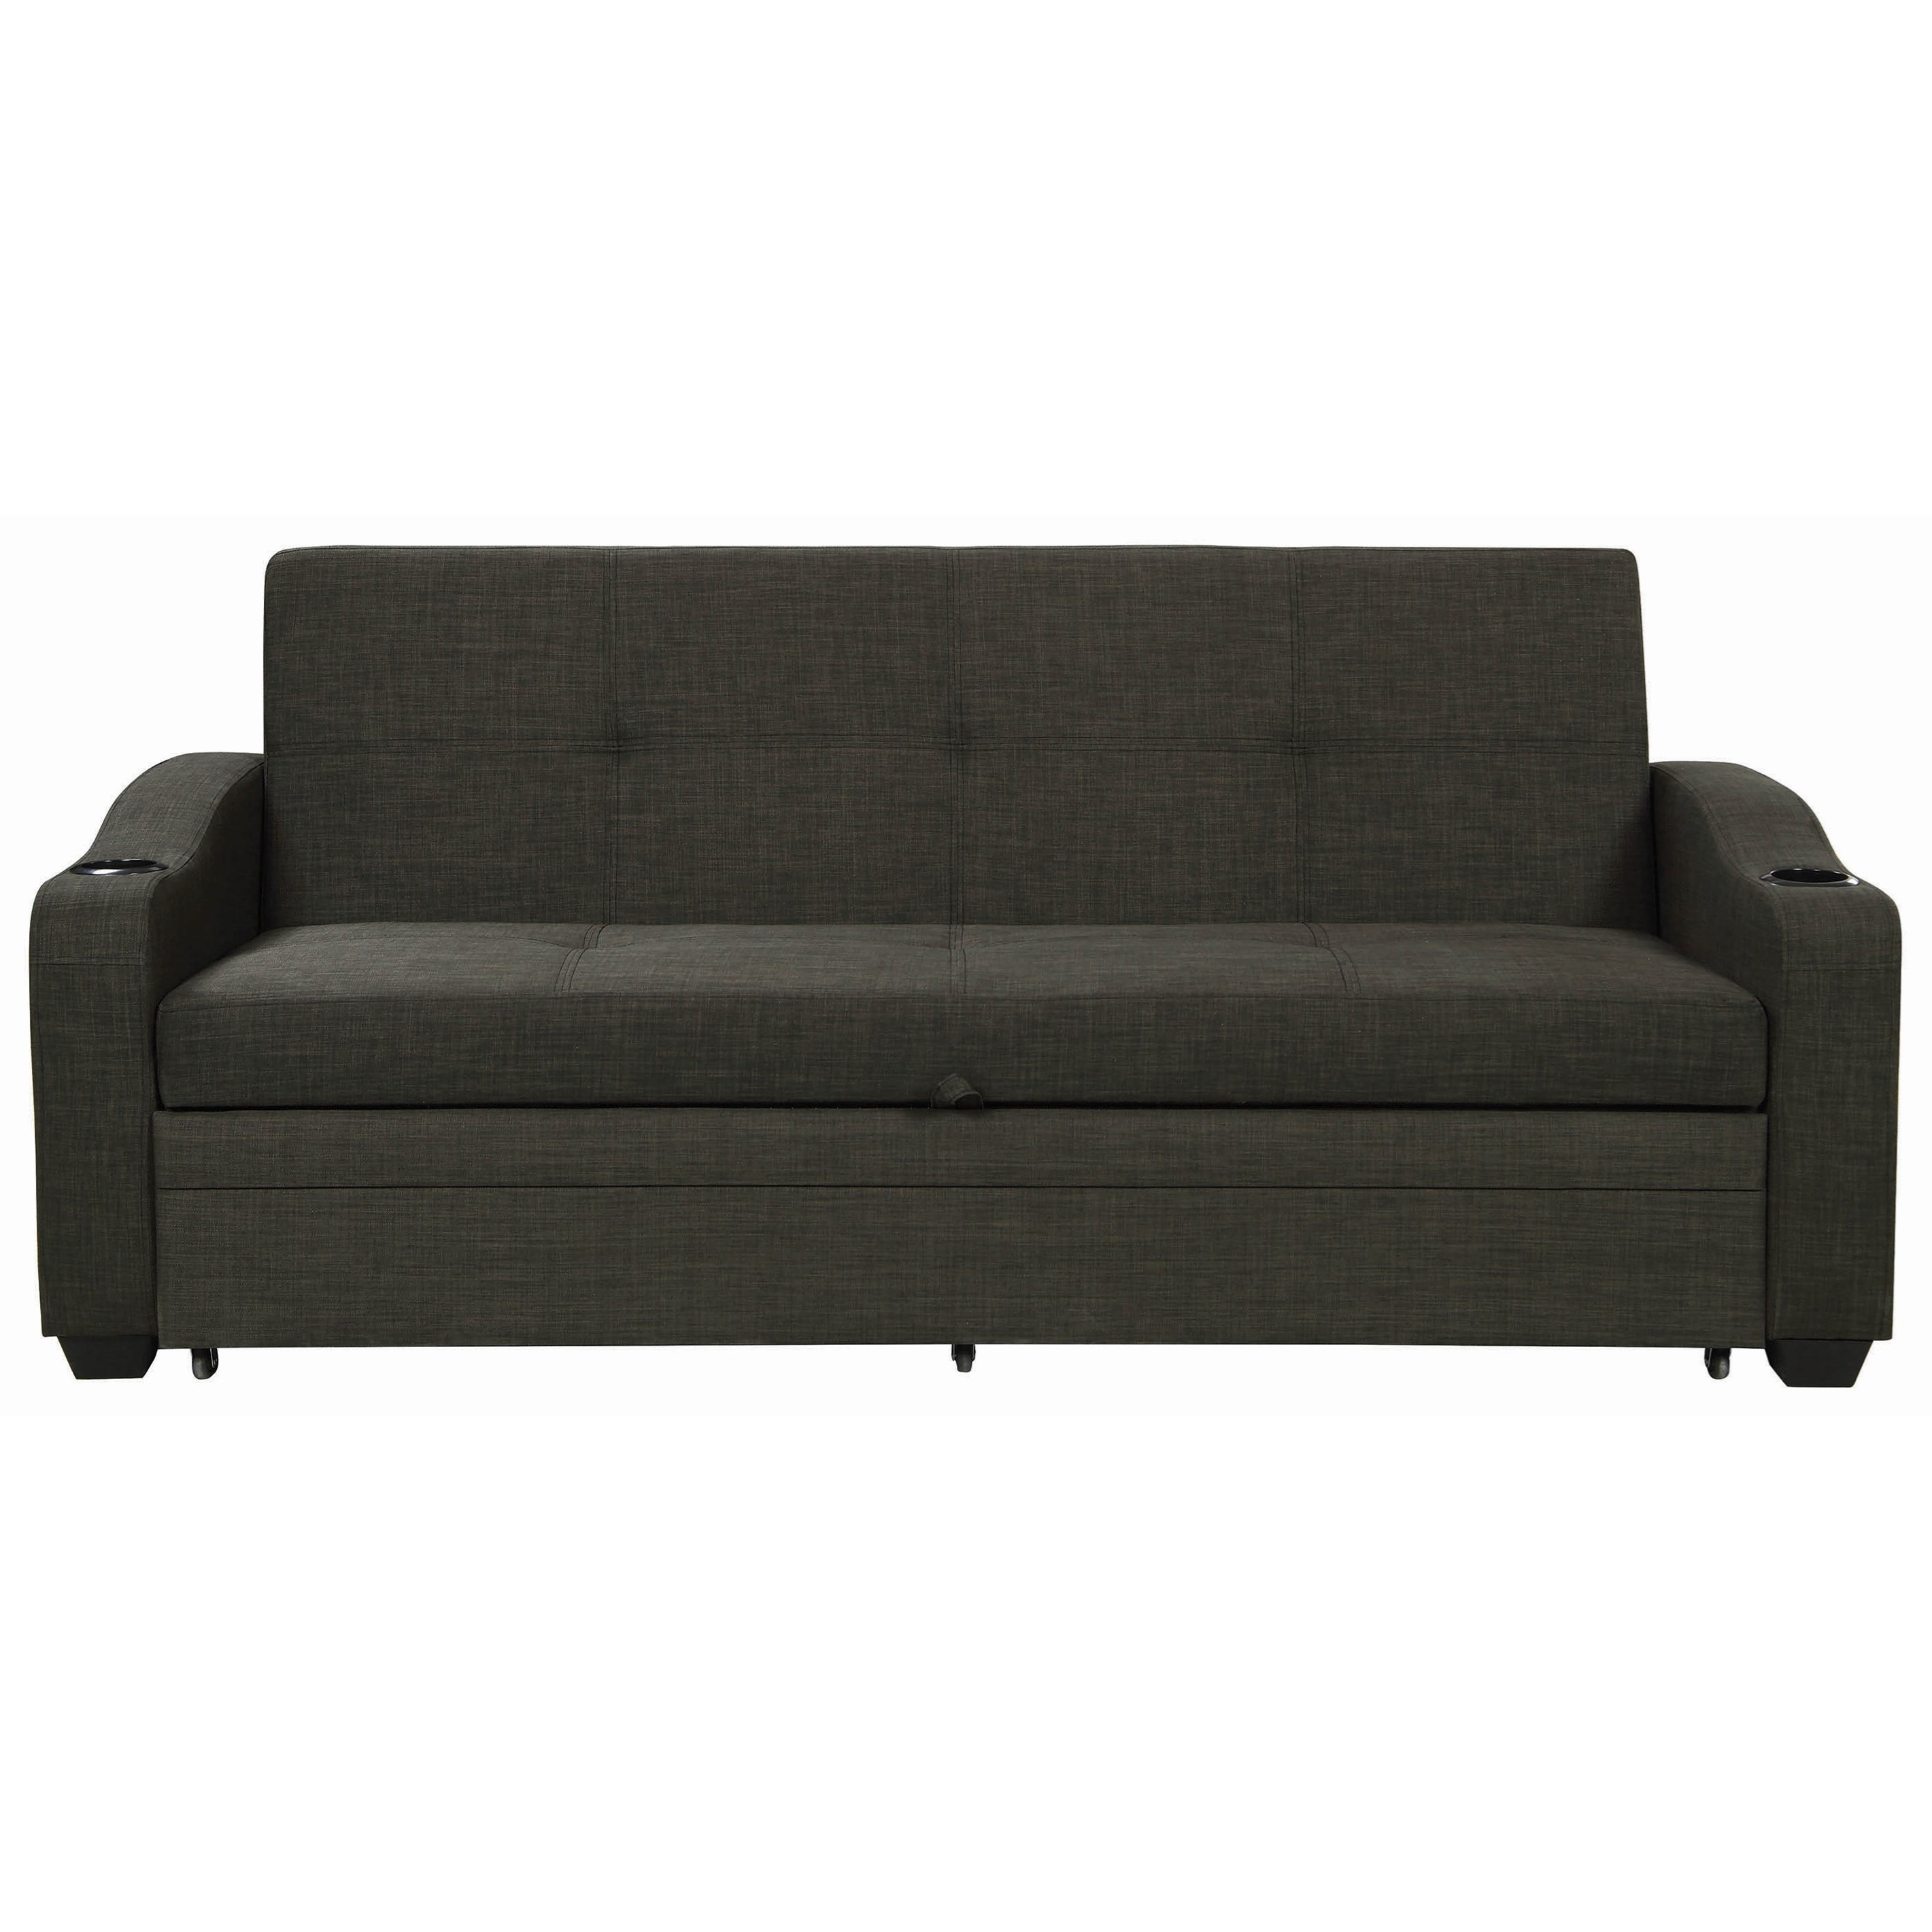 Sofa Beds and Futons Sleeper Sofa Bed by Coaster at Northeast Factory Direct